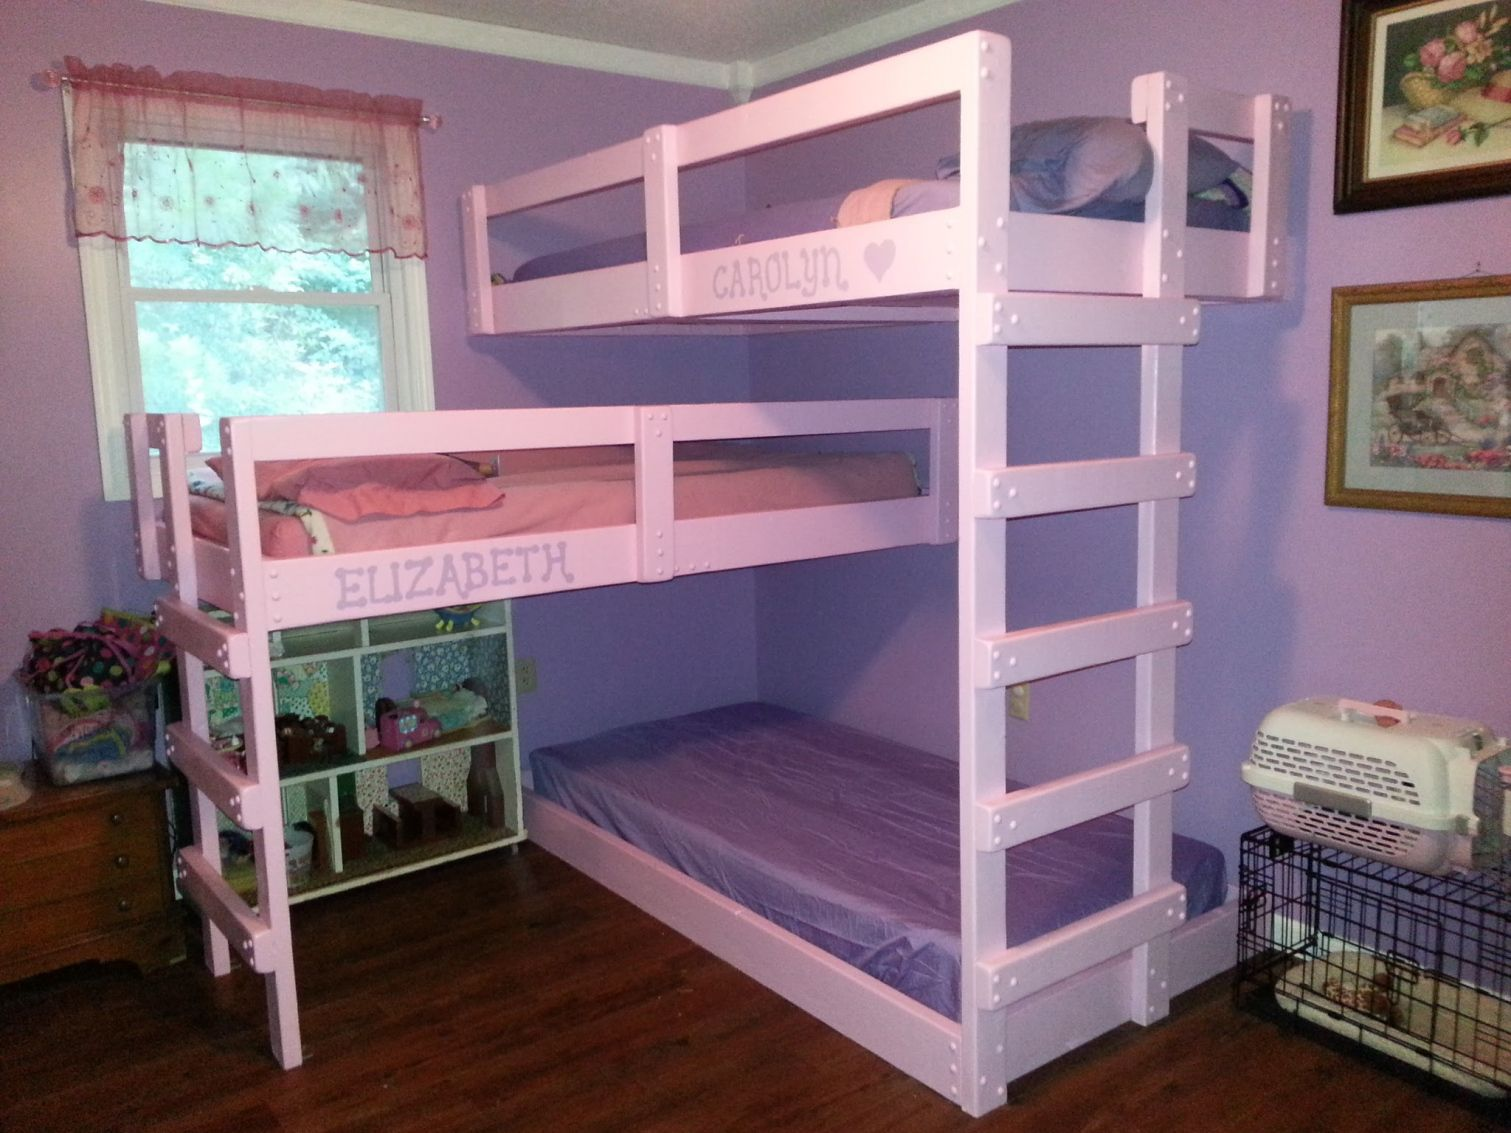 Hervorragend 30 Bunk Beds For Small Rooms   Interior Bedroom Paint Colors Check More At  Http://billiepiperfan.com/bunk Beds For Small Rooms/